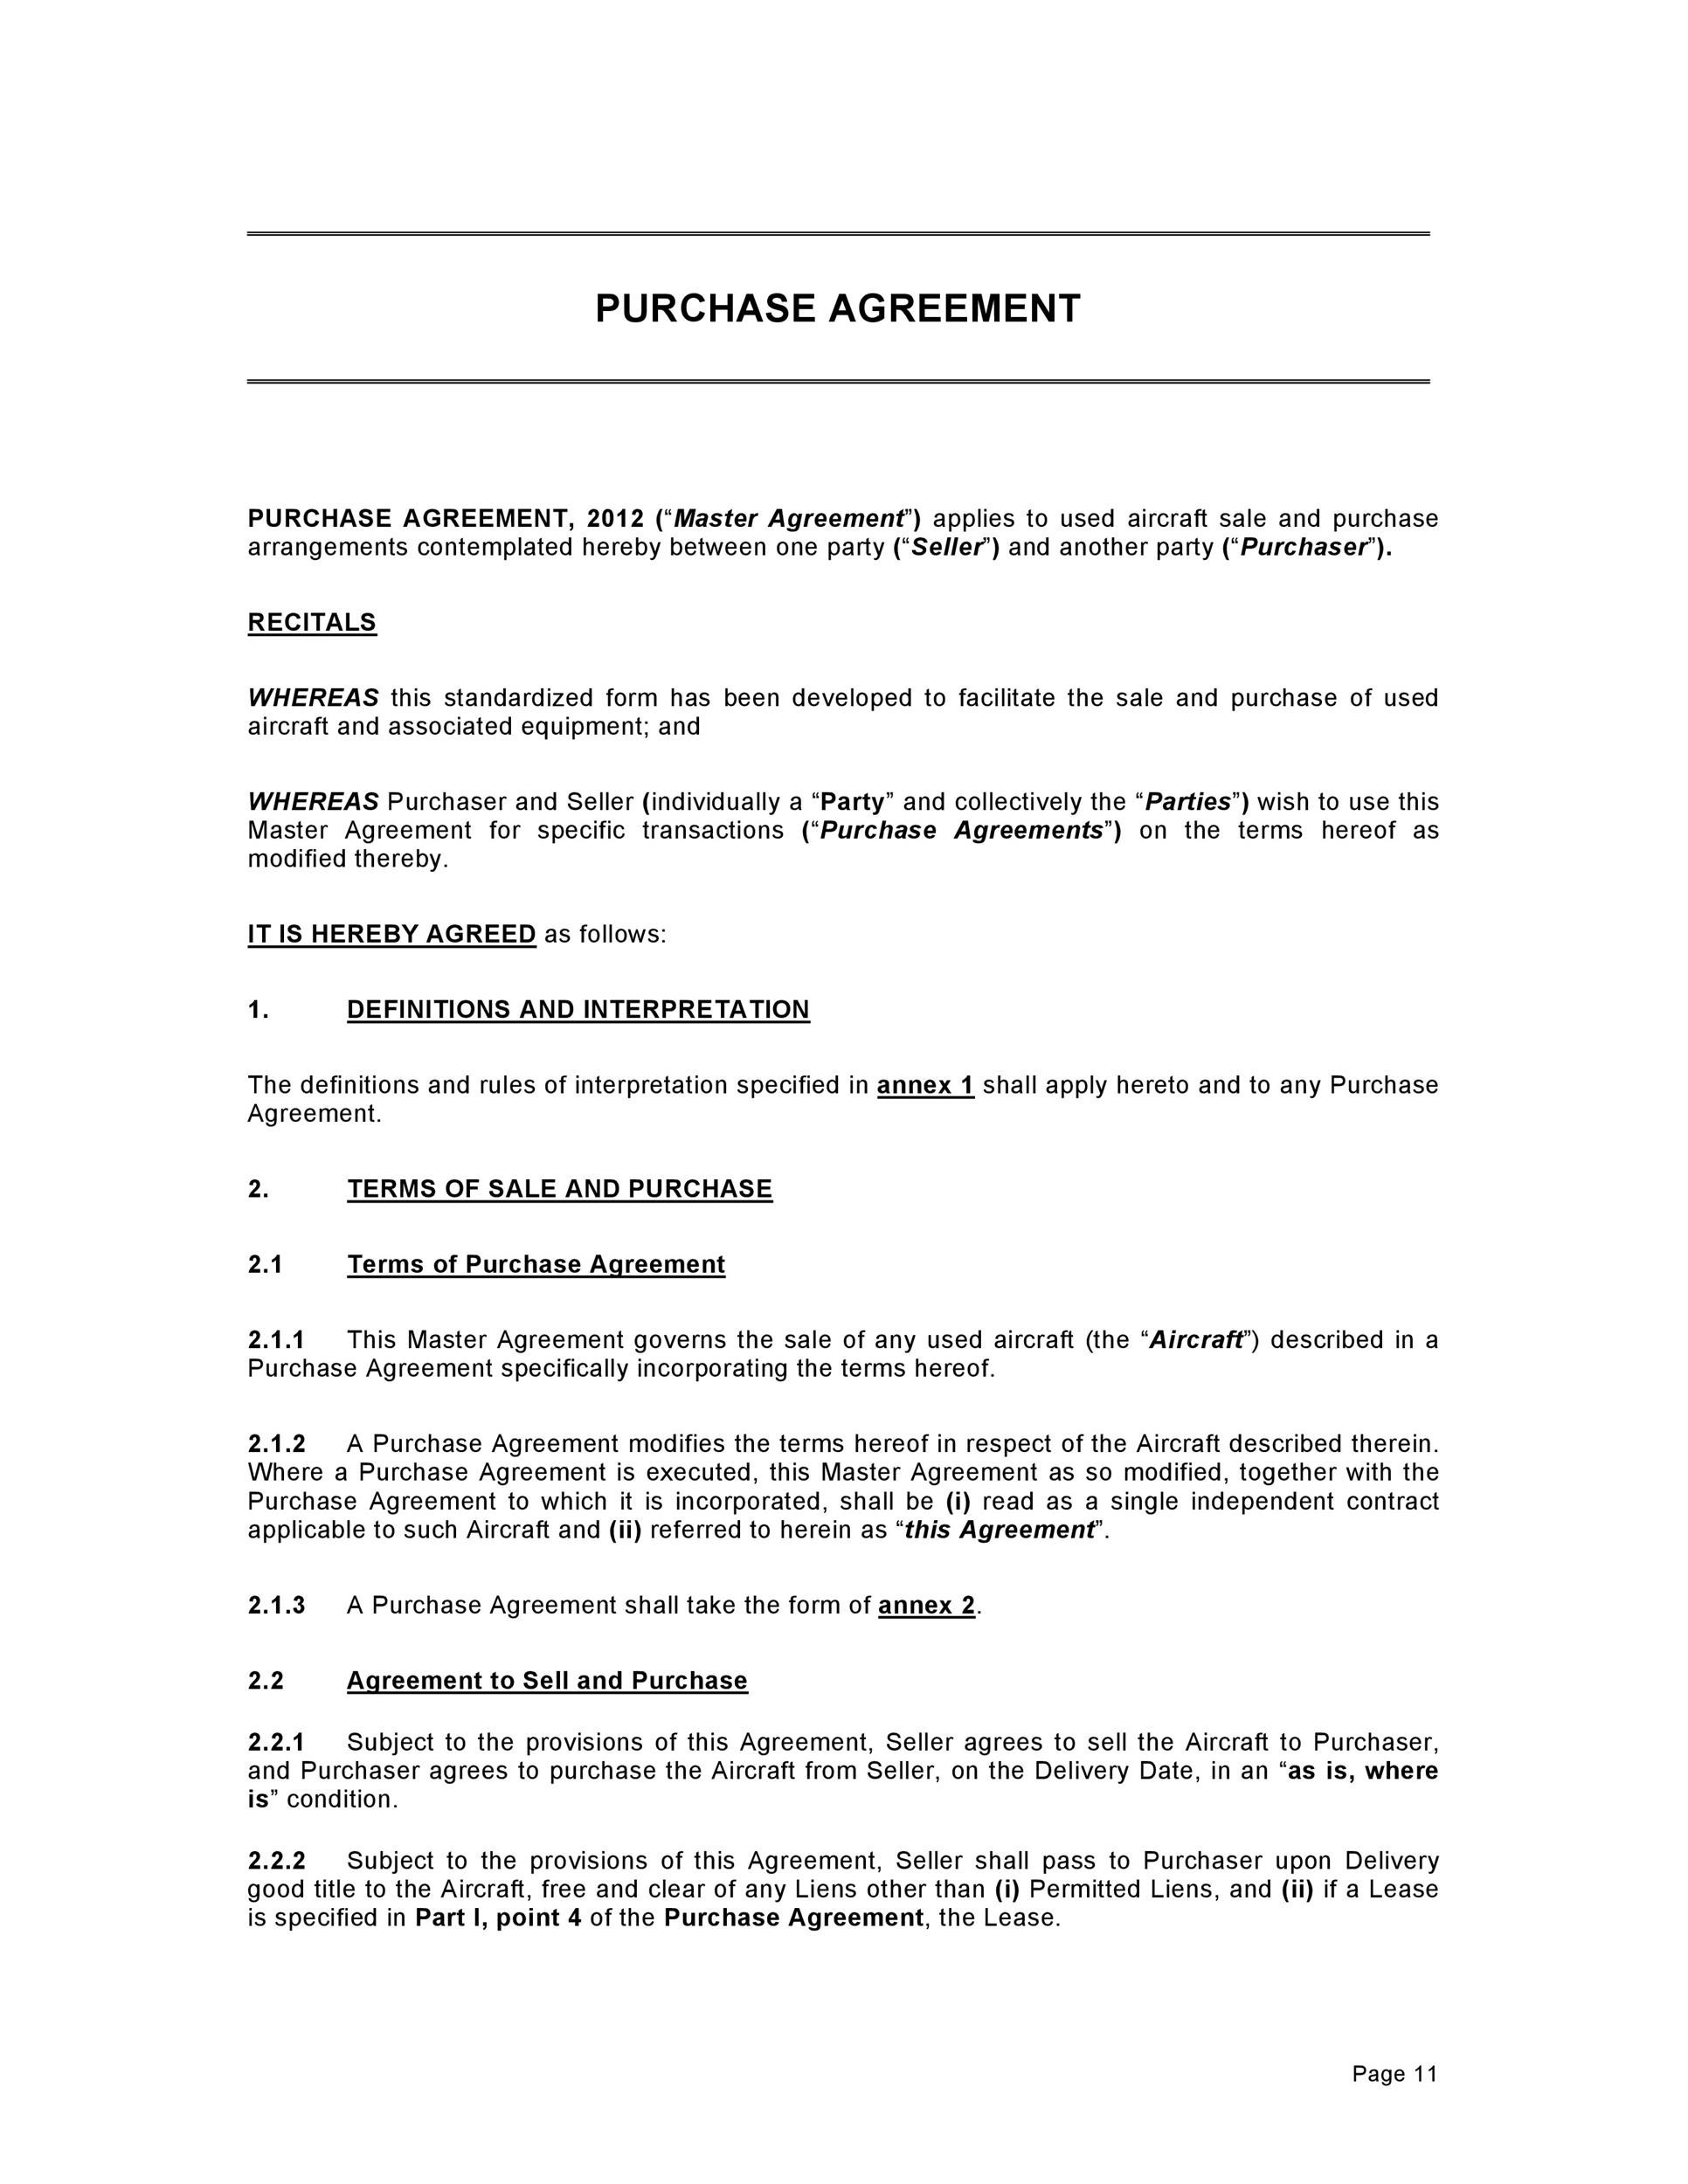 Cleaning Contract Agreement Best Printable Agreements Images On